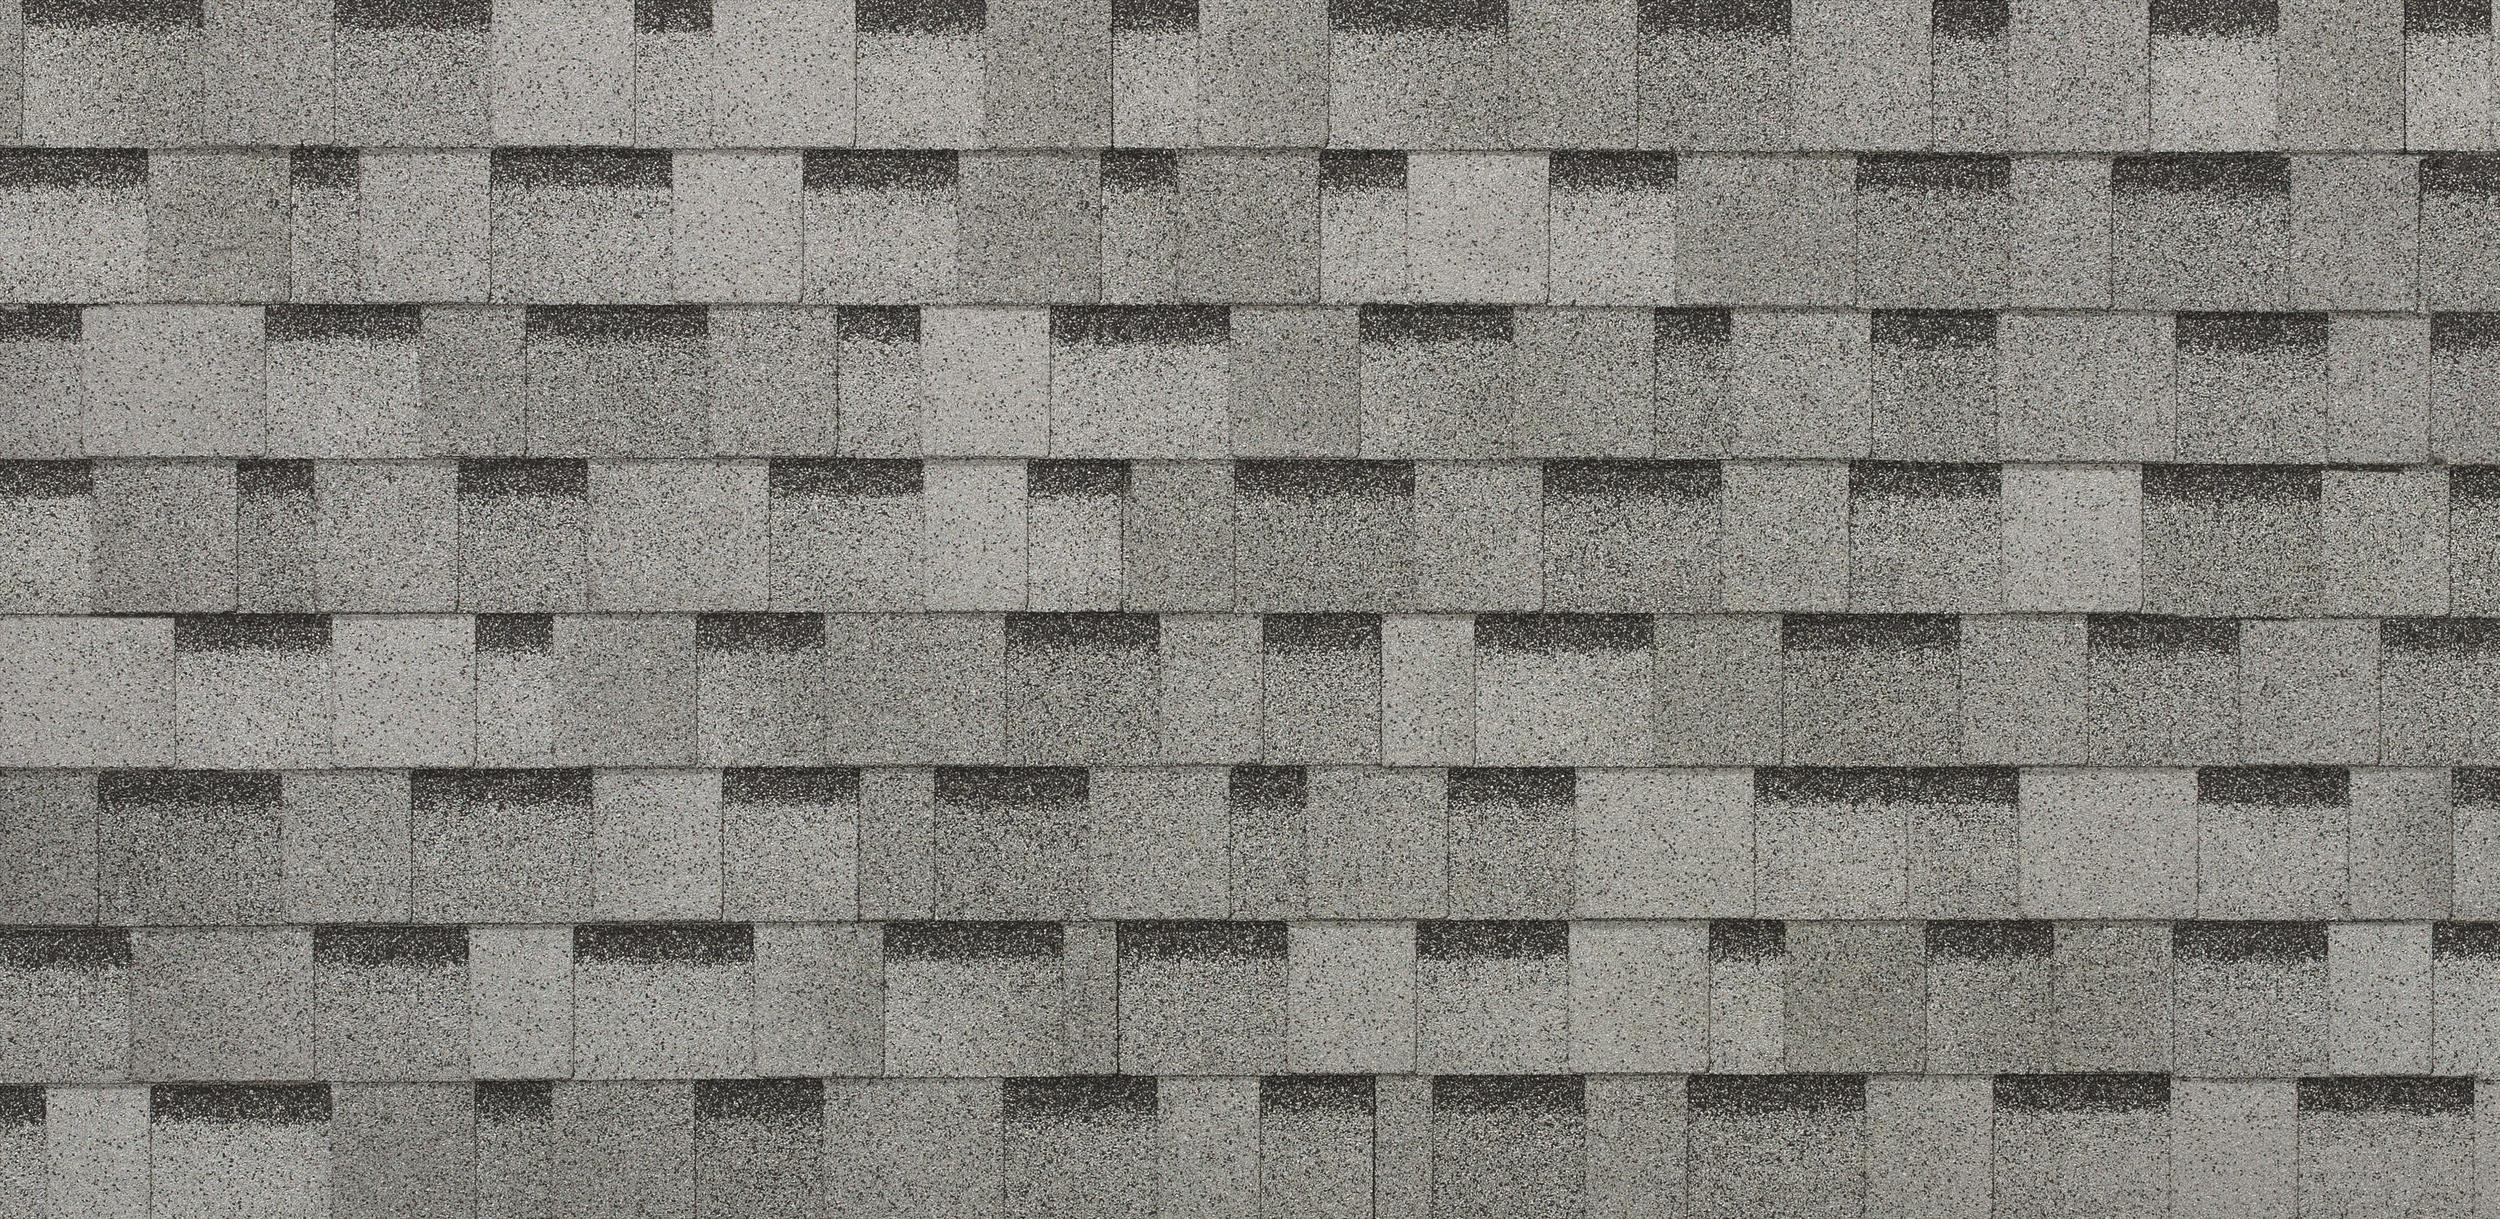 asphalt_shingle_029.jpg